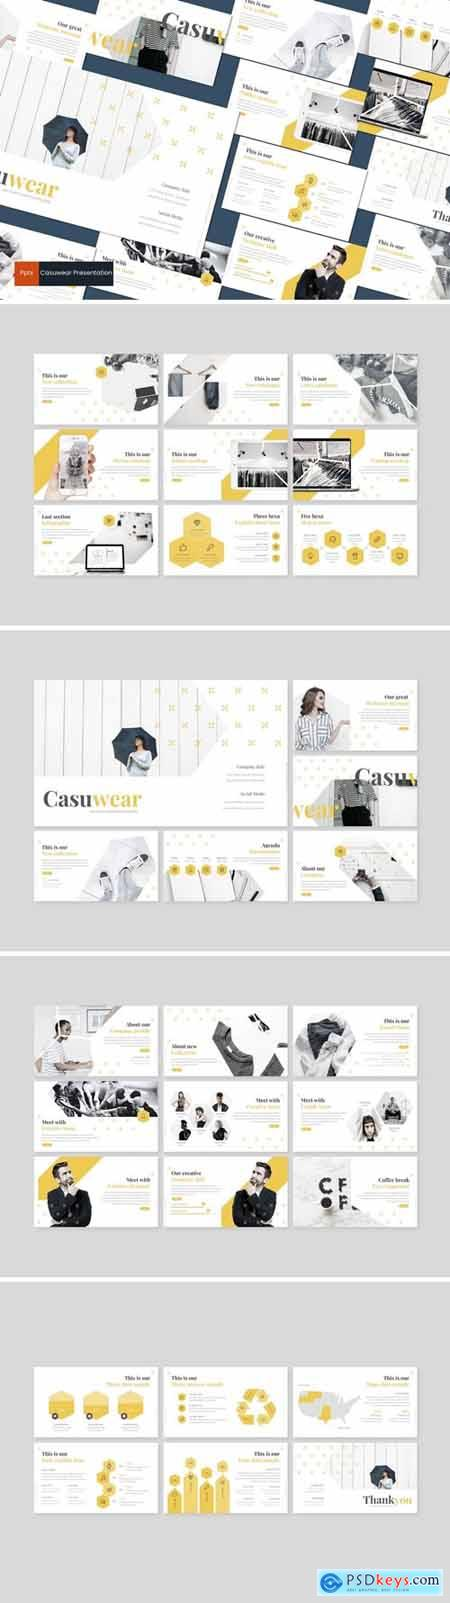 Casuwear Powerpoint, Keynote and Google Slides Templates